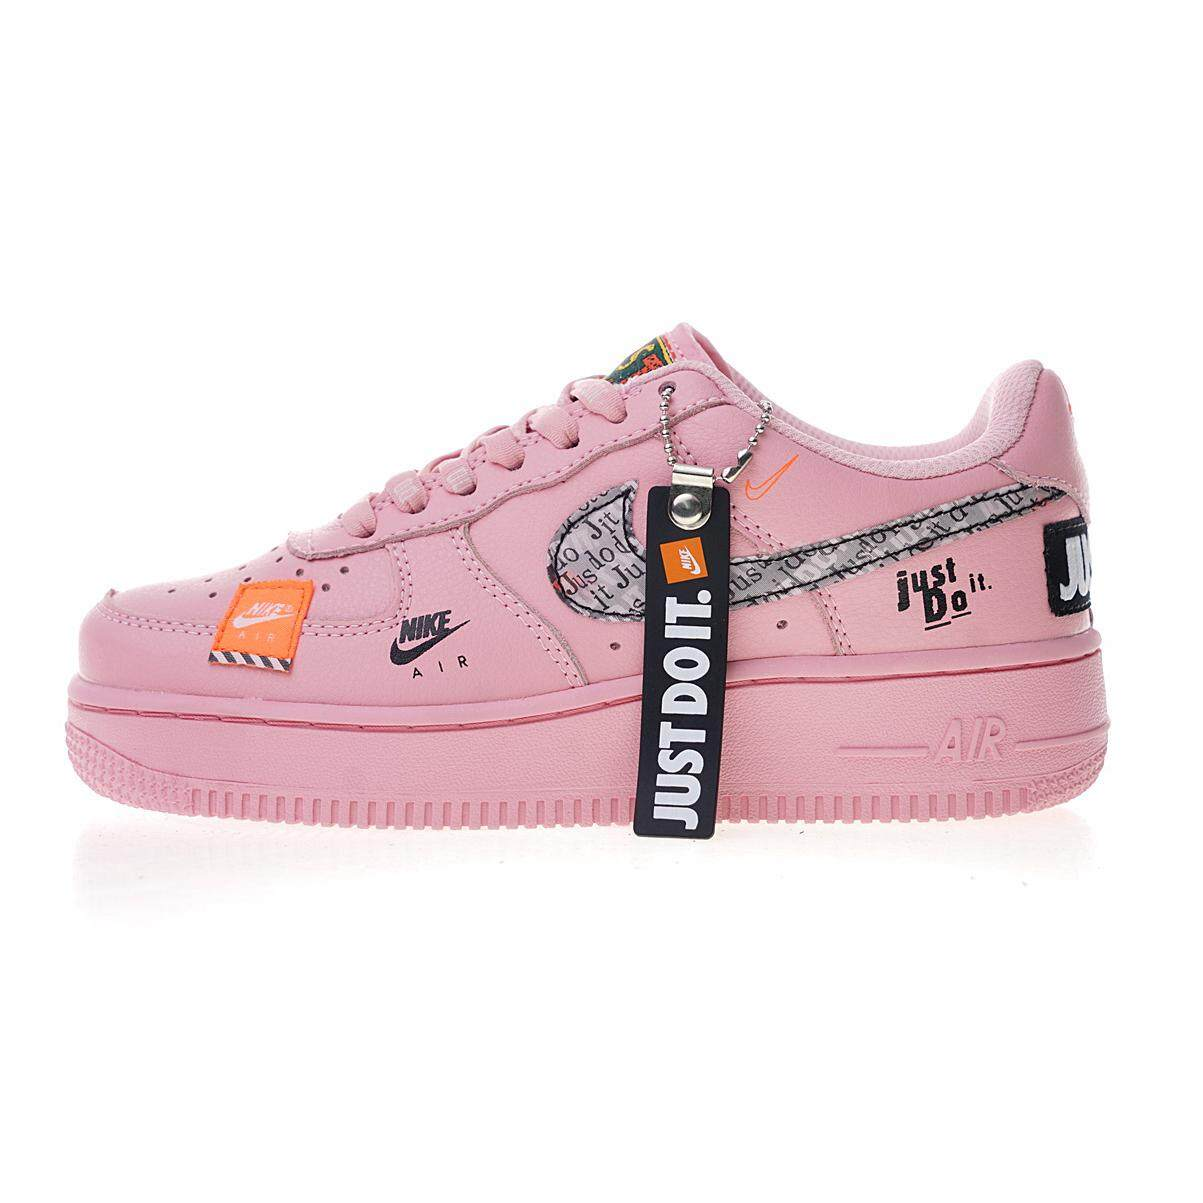 reputable site 1611d 6ba87 Nike Air Force 1 07 LV8 Women's Skateboarding Shoes Sneakers Women's Shoes